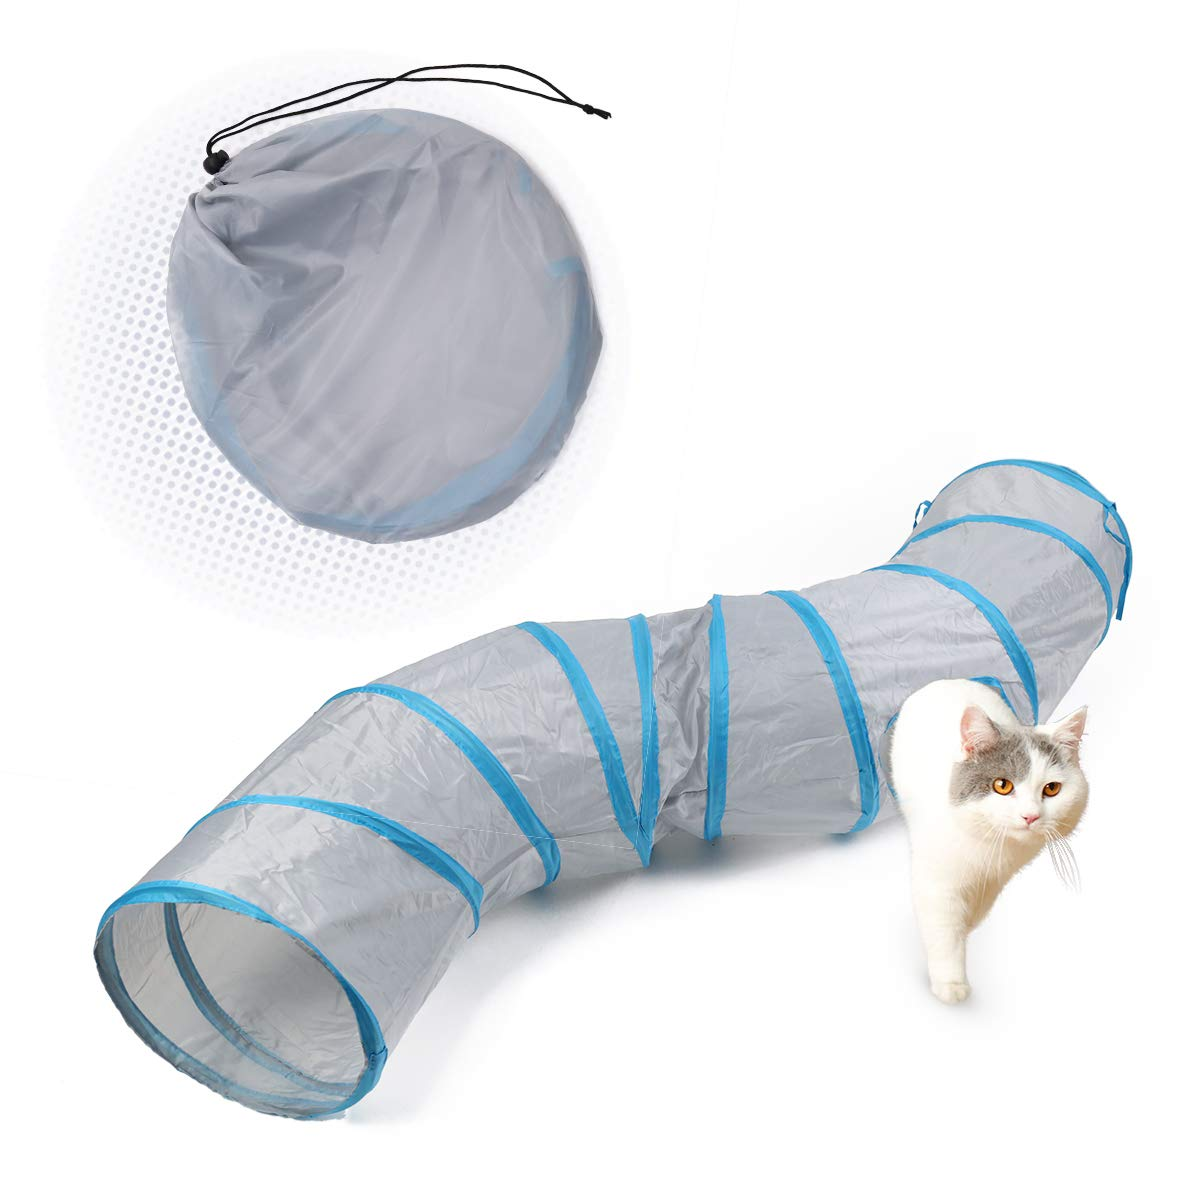 PAWZ Road Cat Toys S Way Cat Collapsible Tunnel for Fat Cat Upgraded Version 12'' Diameter Gray by PAWZ Road